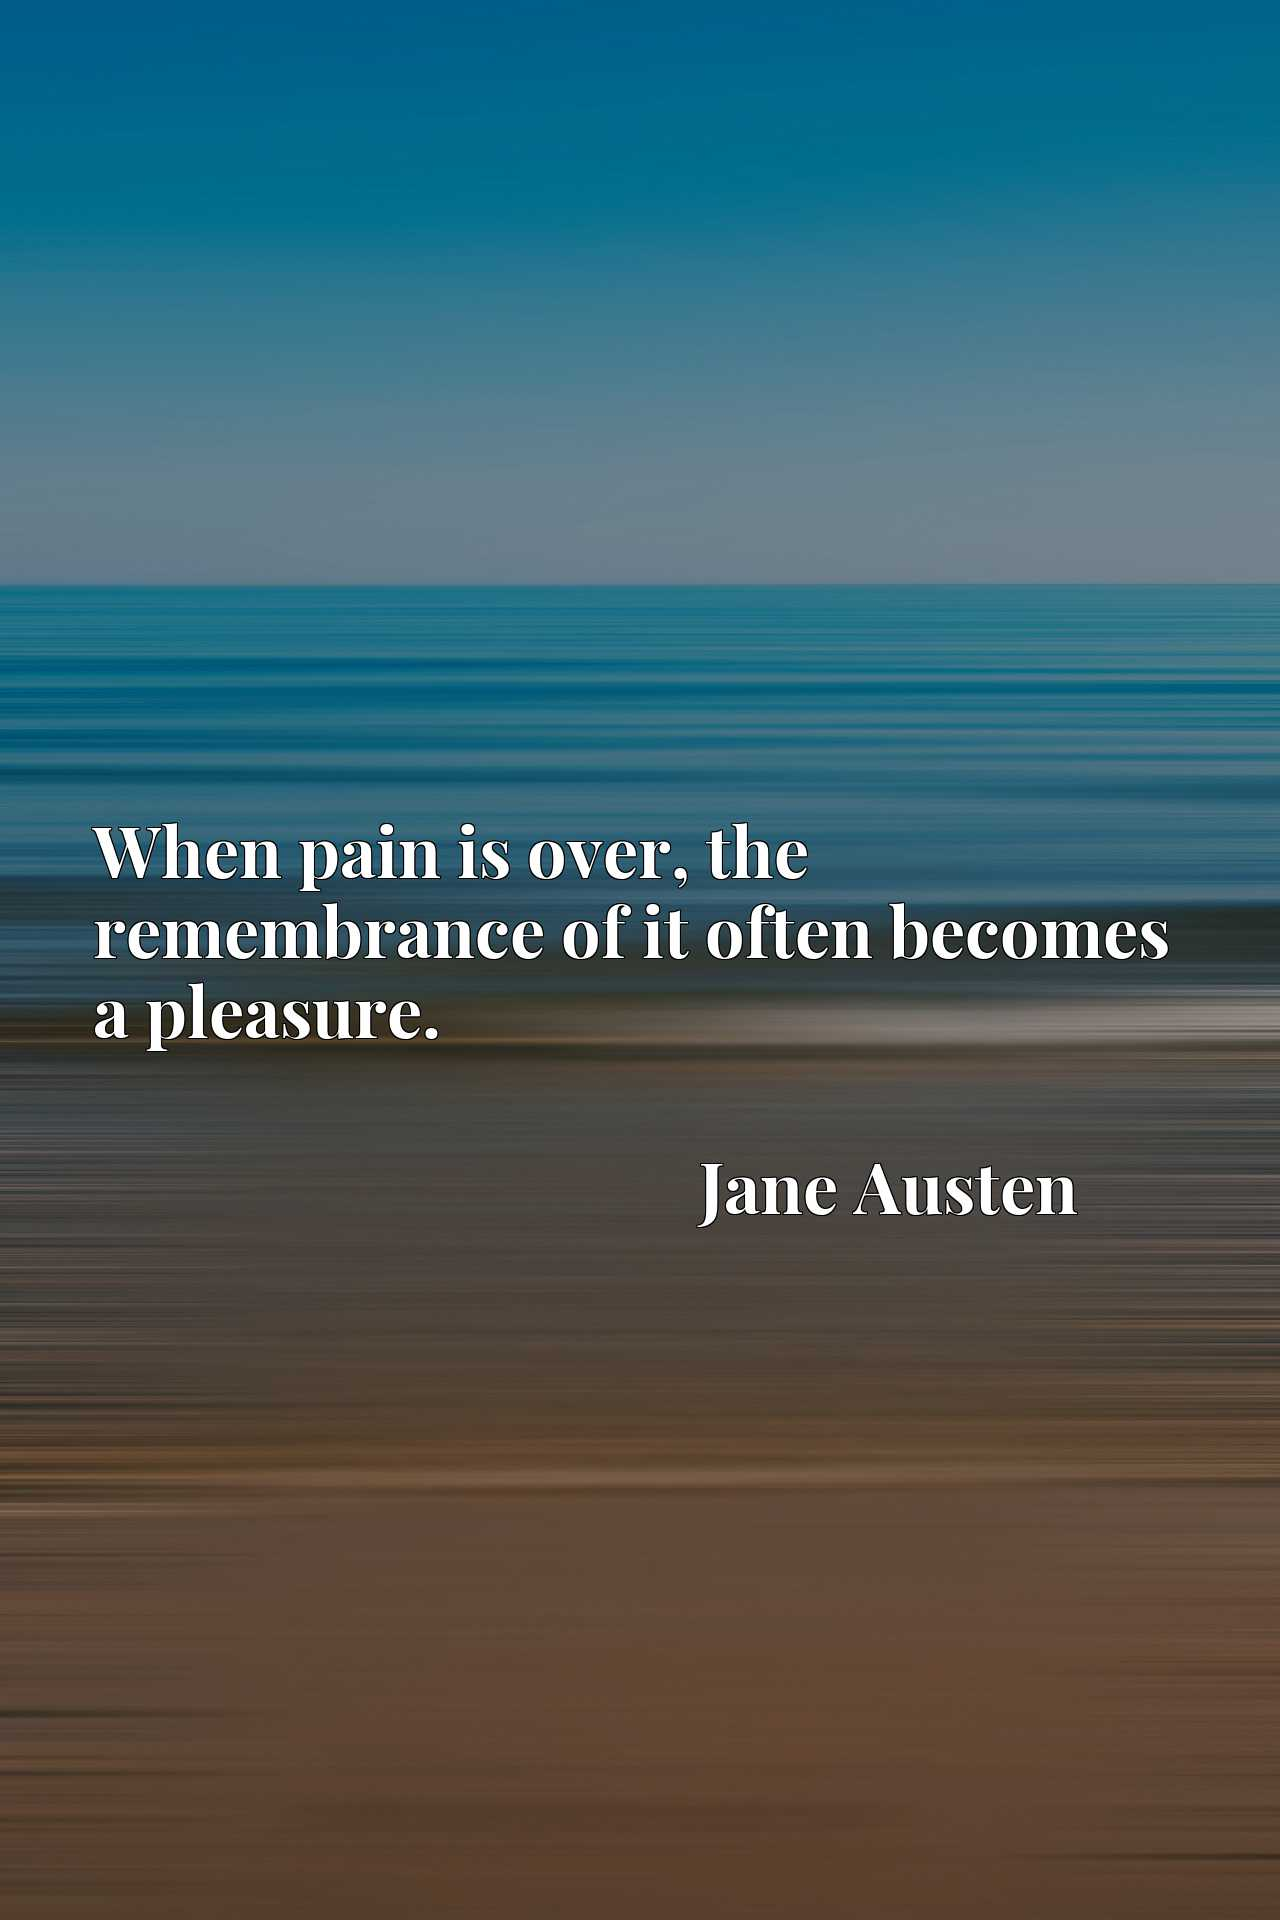 Quote Picture :When pain is over, the remembrance of it often becomes a pleasure.